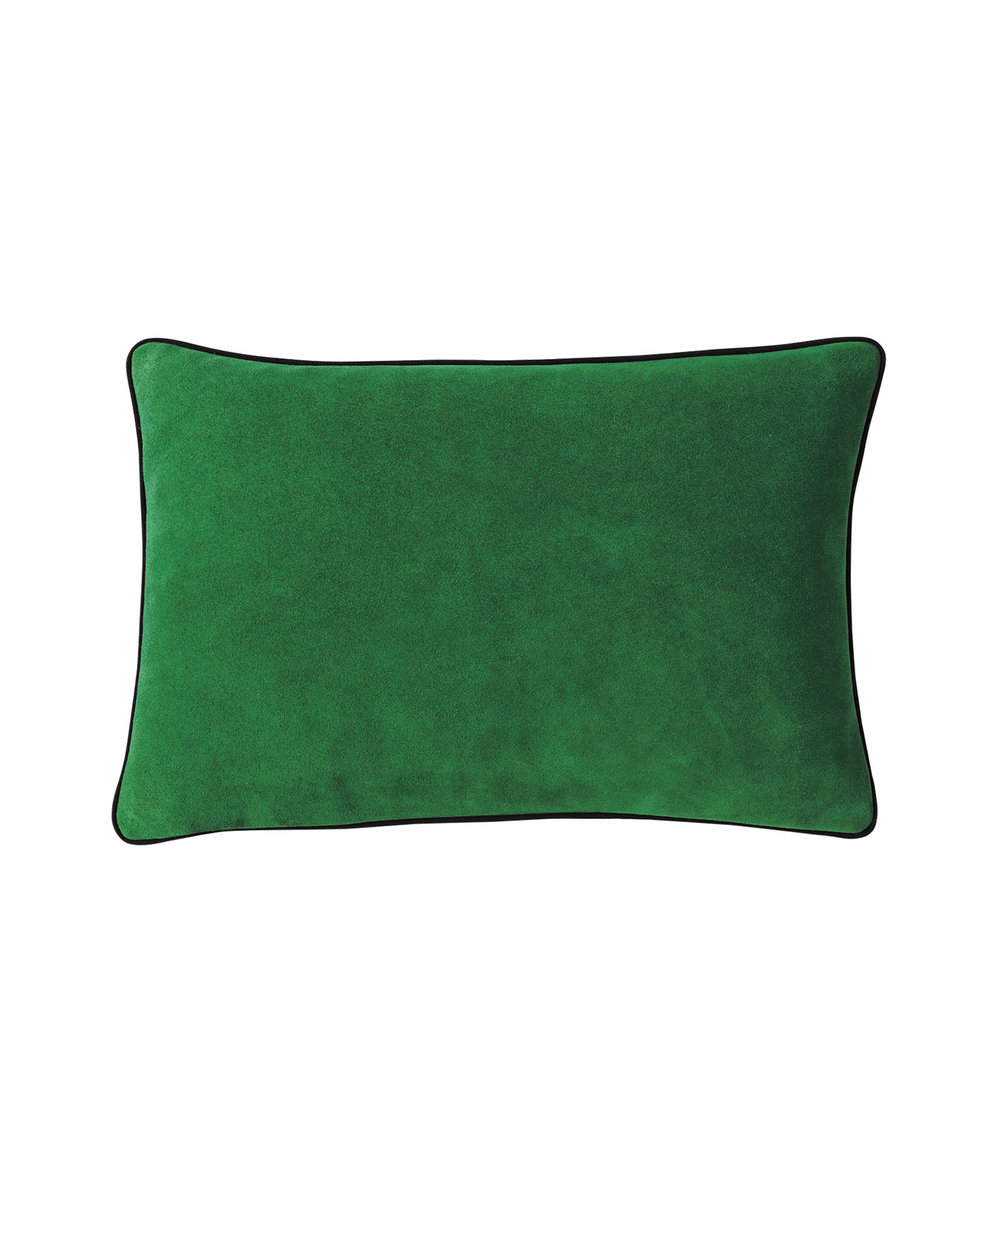 Suede Lumbar PIllow - Serena and Lily - Malachite.jpg